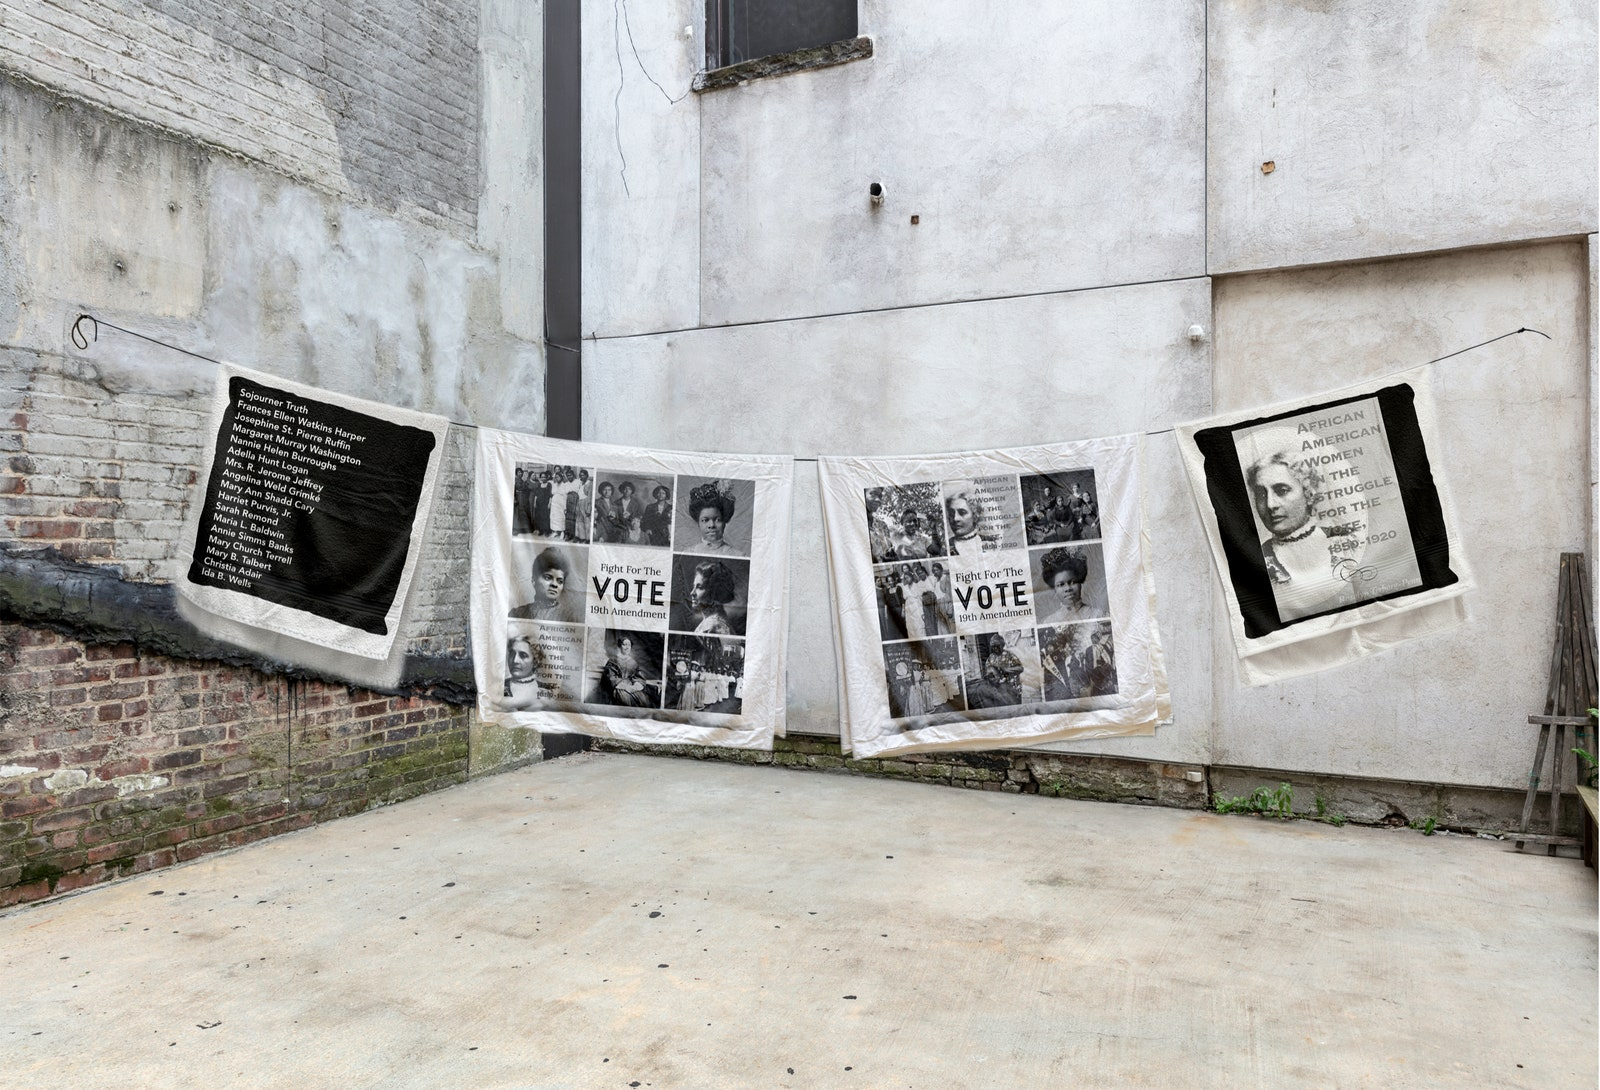 A clothing line strung across a concrete yard with black and white photos of the suffragette movement attached.